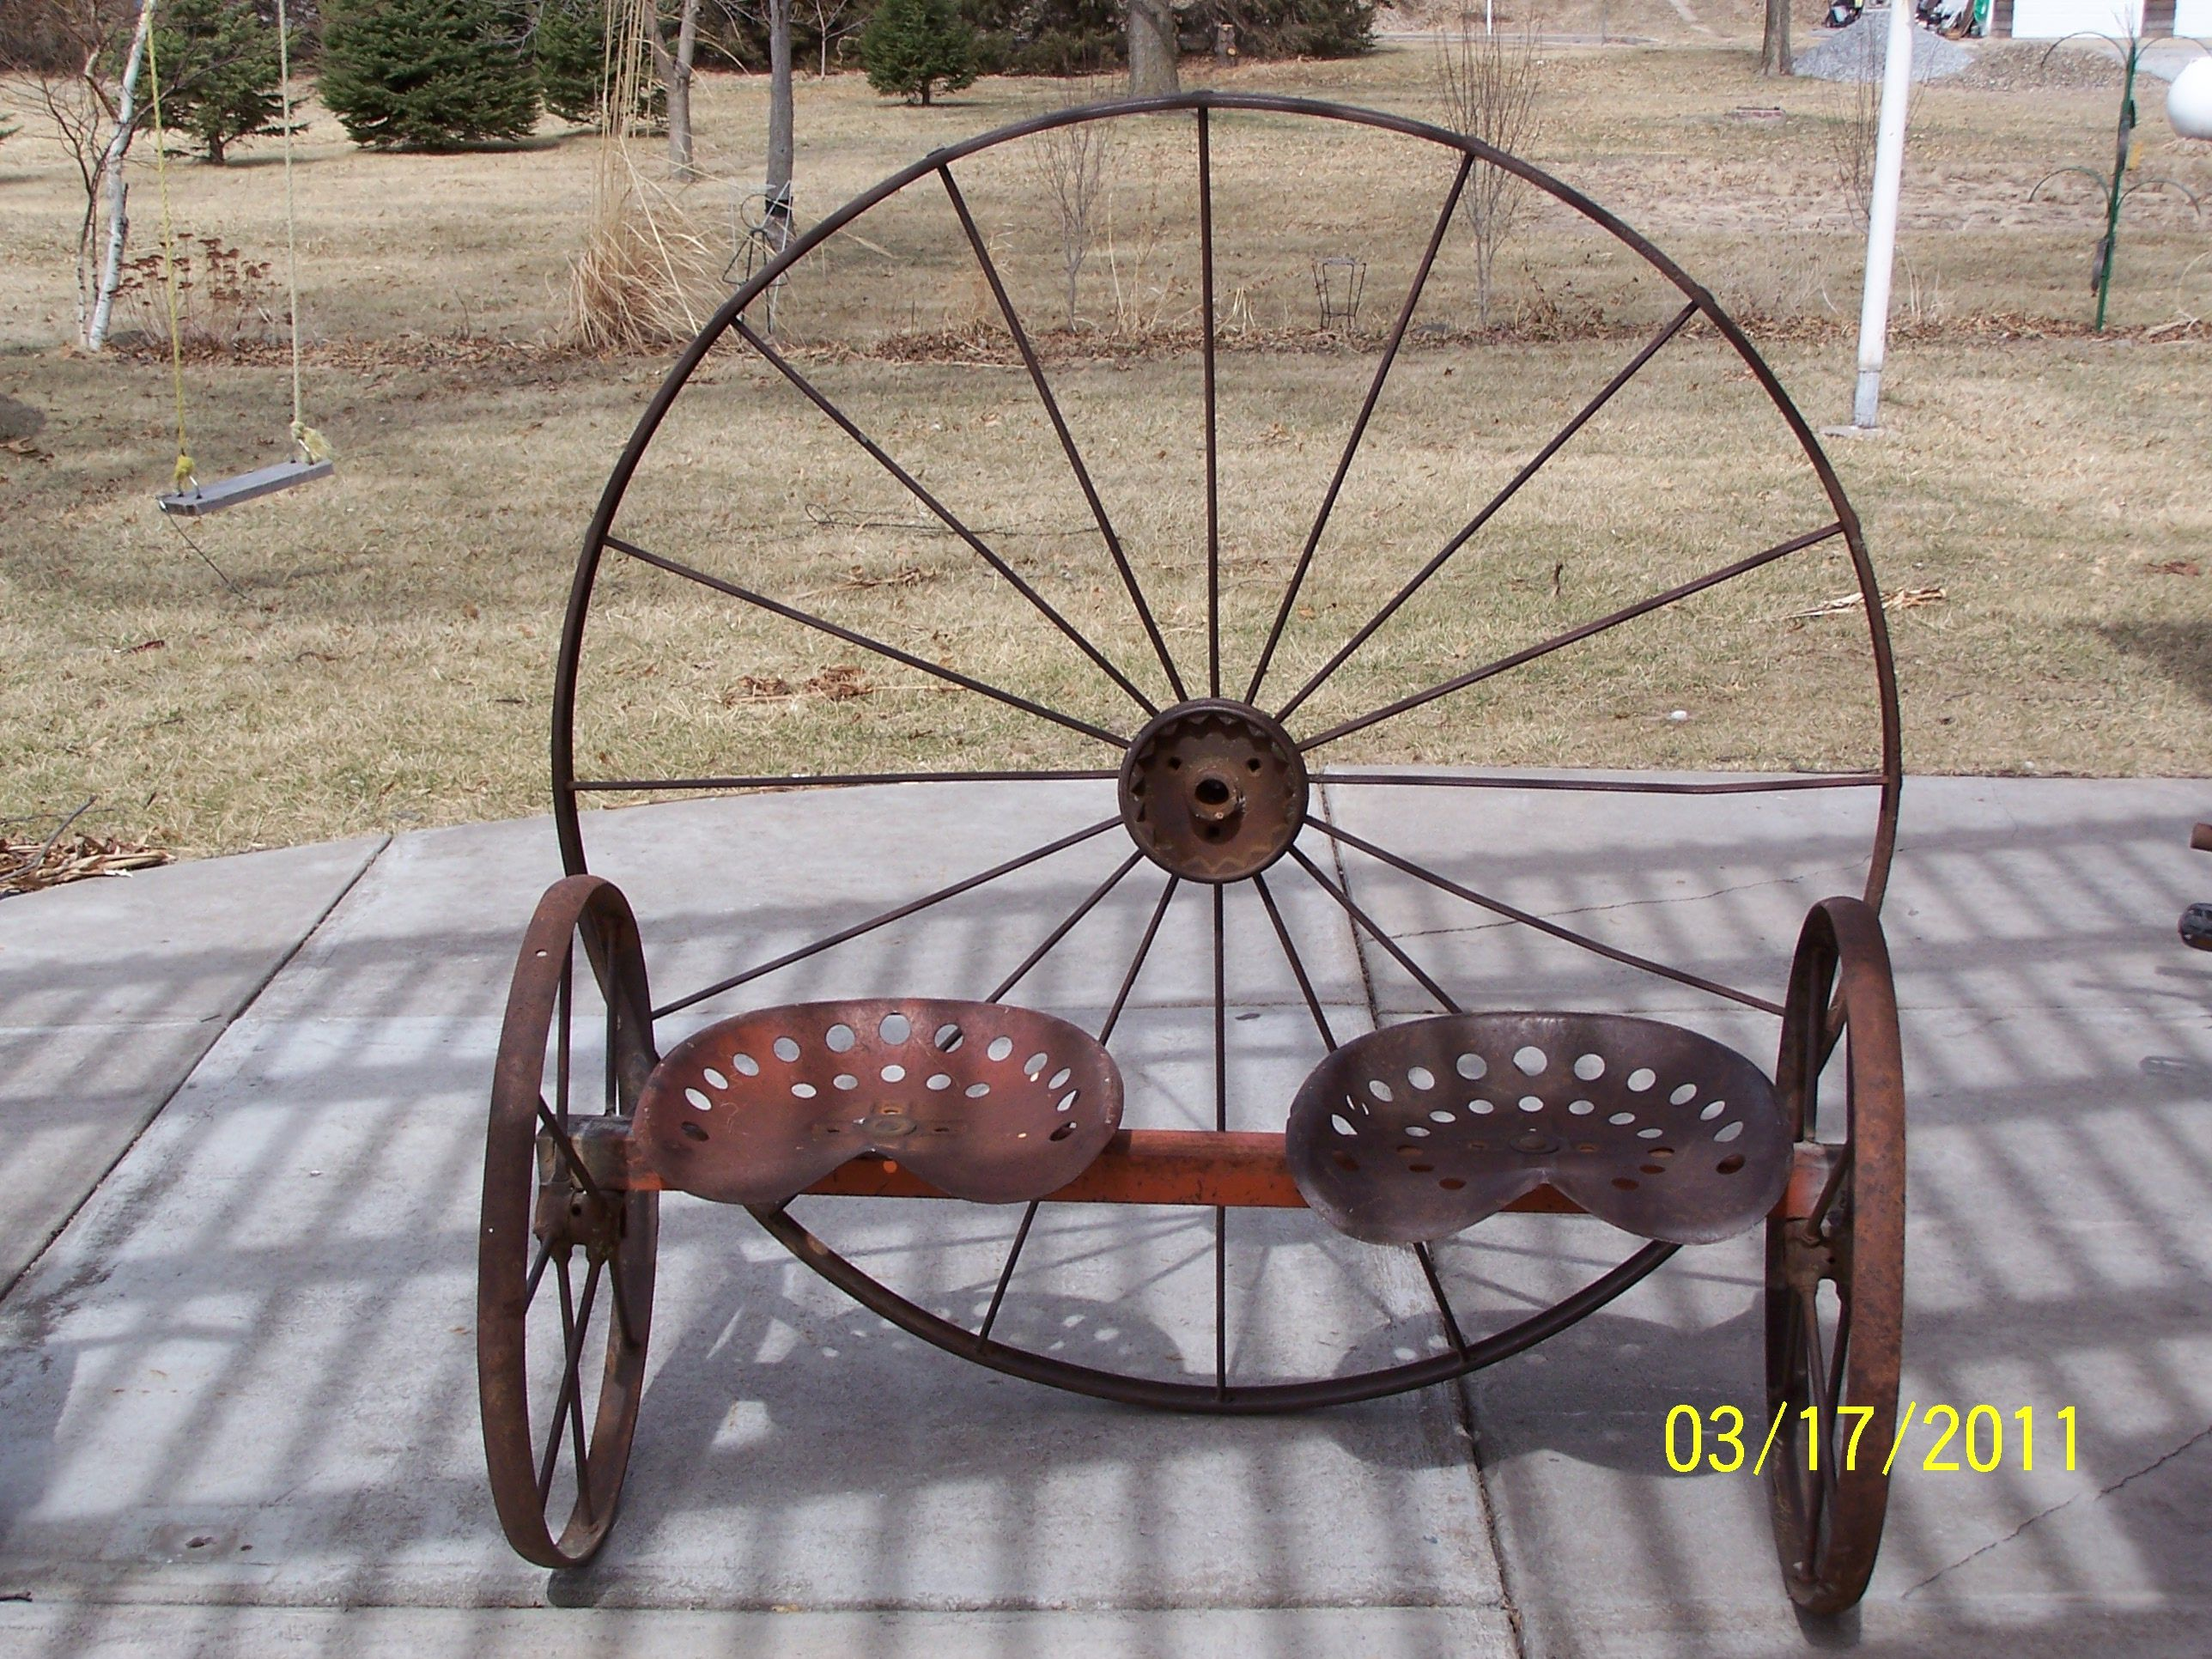 Antique Wagon Wheel Tractor Seat Garden Bench Metal Furniture Pinterest Gardens Heart